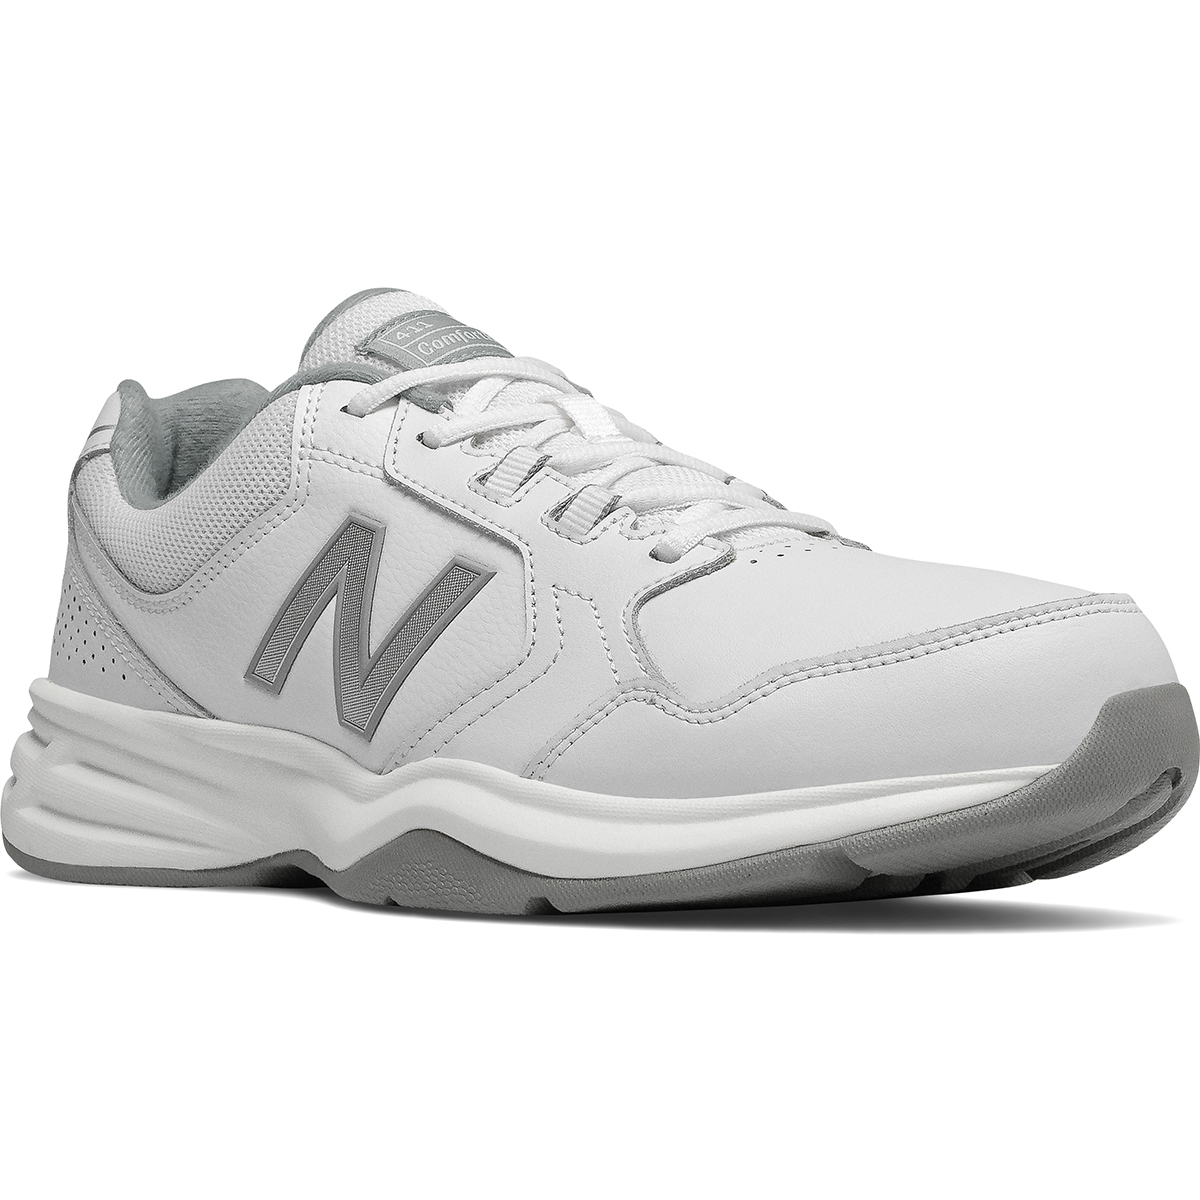 New Balance Men's 411 Walking Shoes - White, 9.5